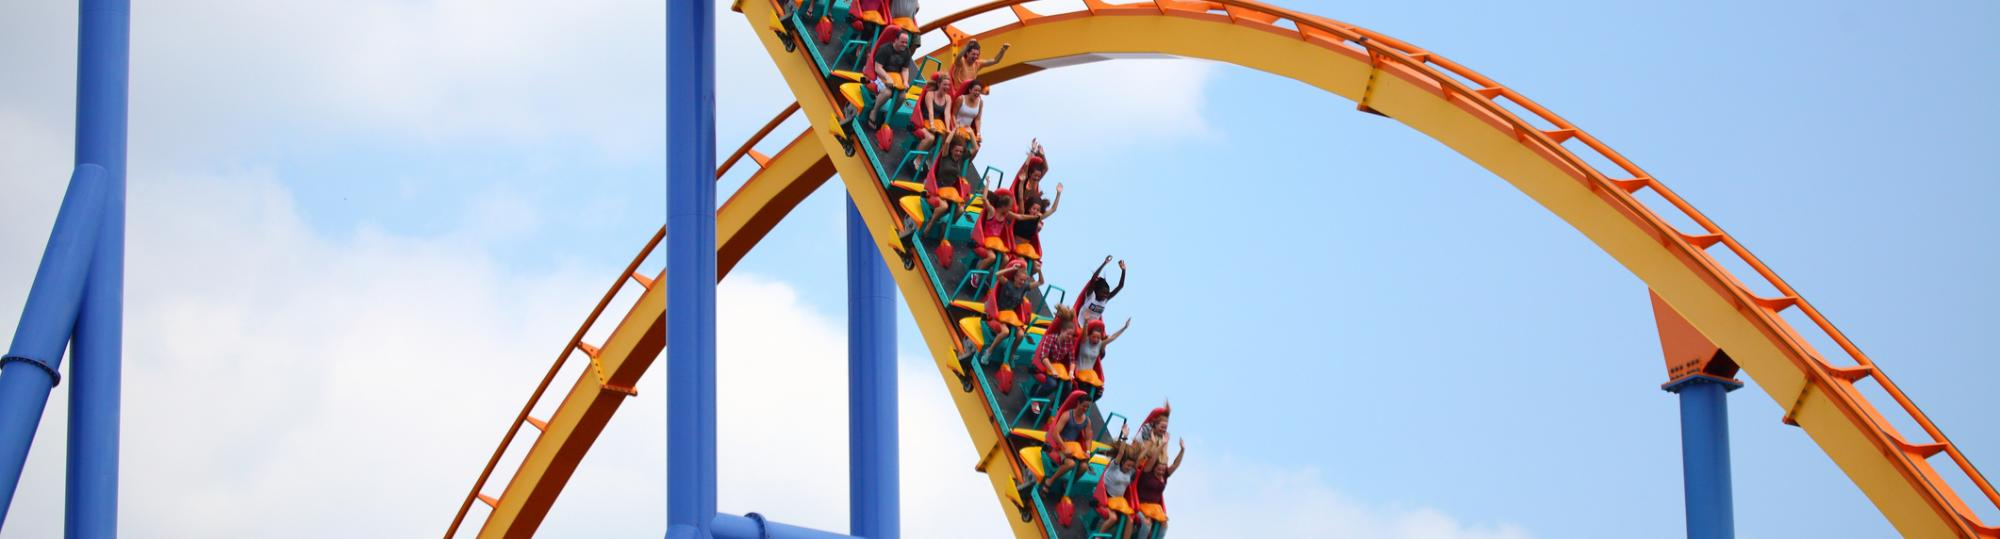 California's Great America Military Discount with Veterans Advantage